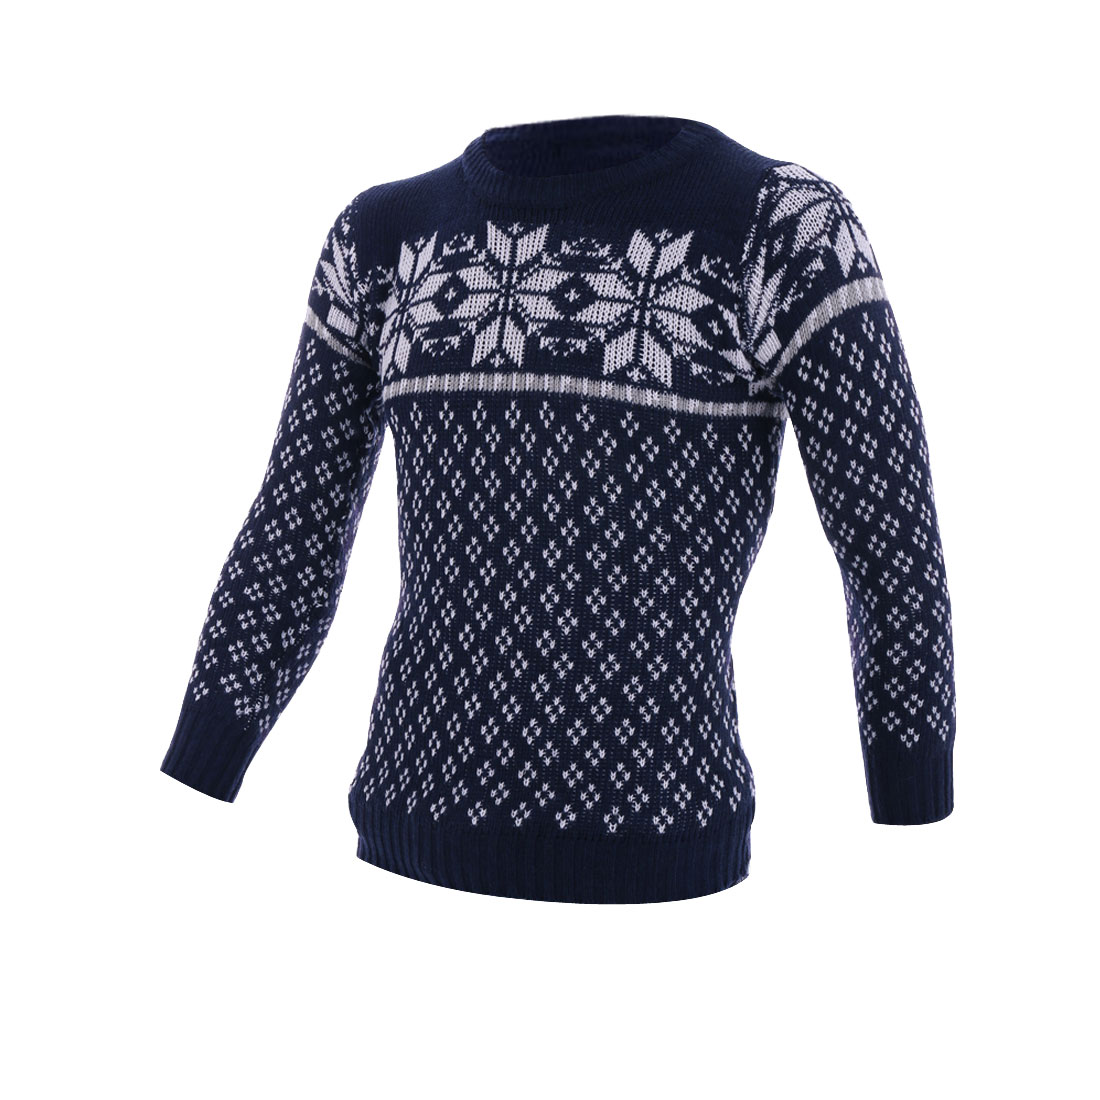 S Navy Blue Snowflake Pattern Crewneck Color Block Knit Men Sweater